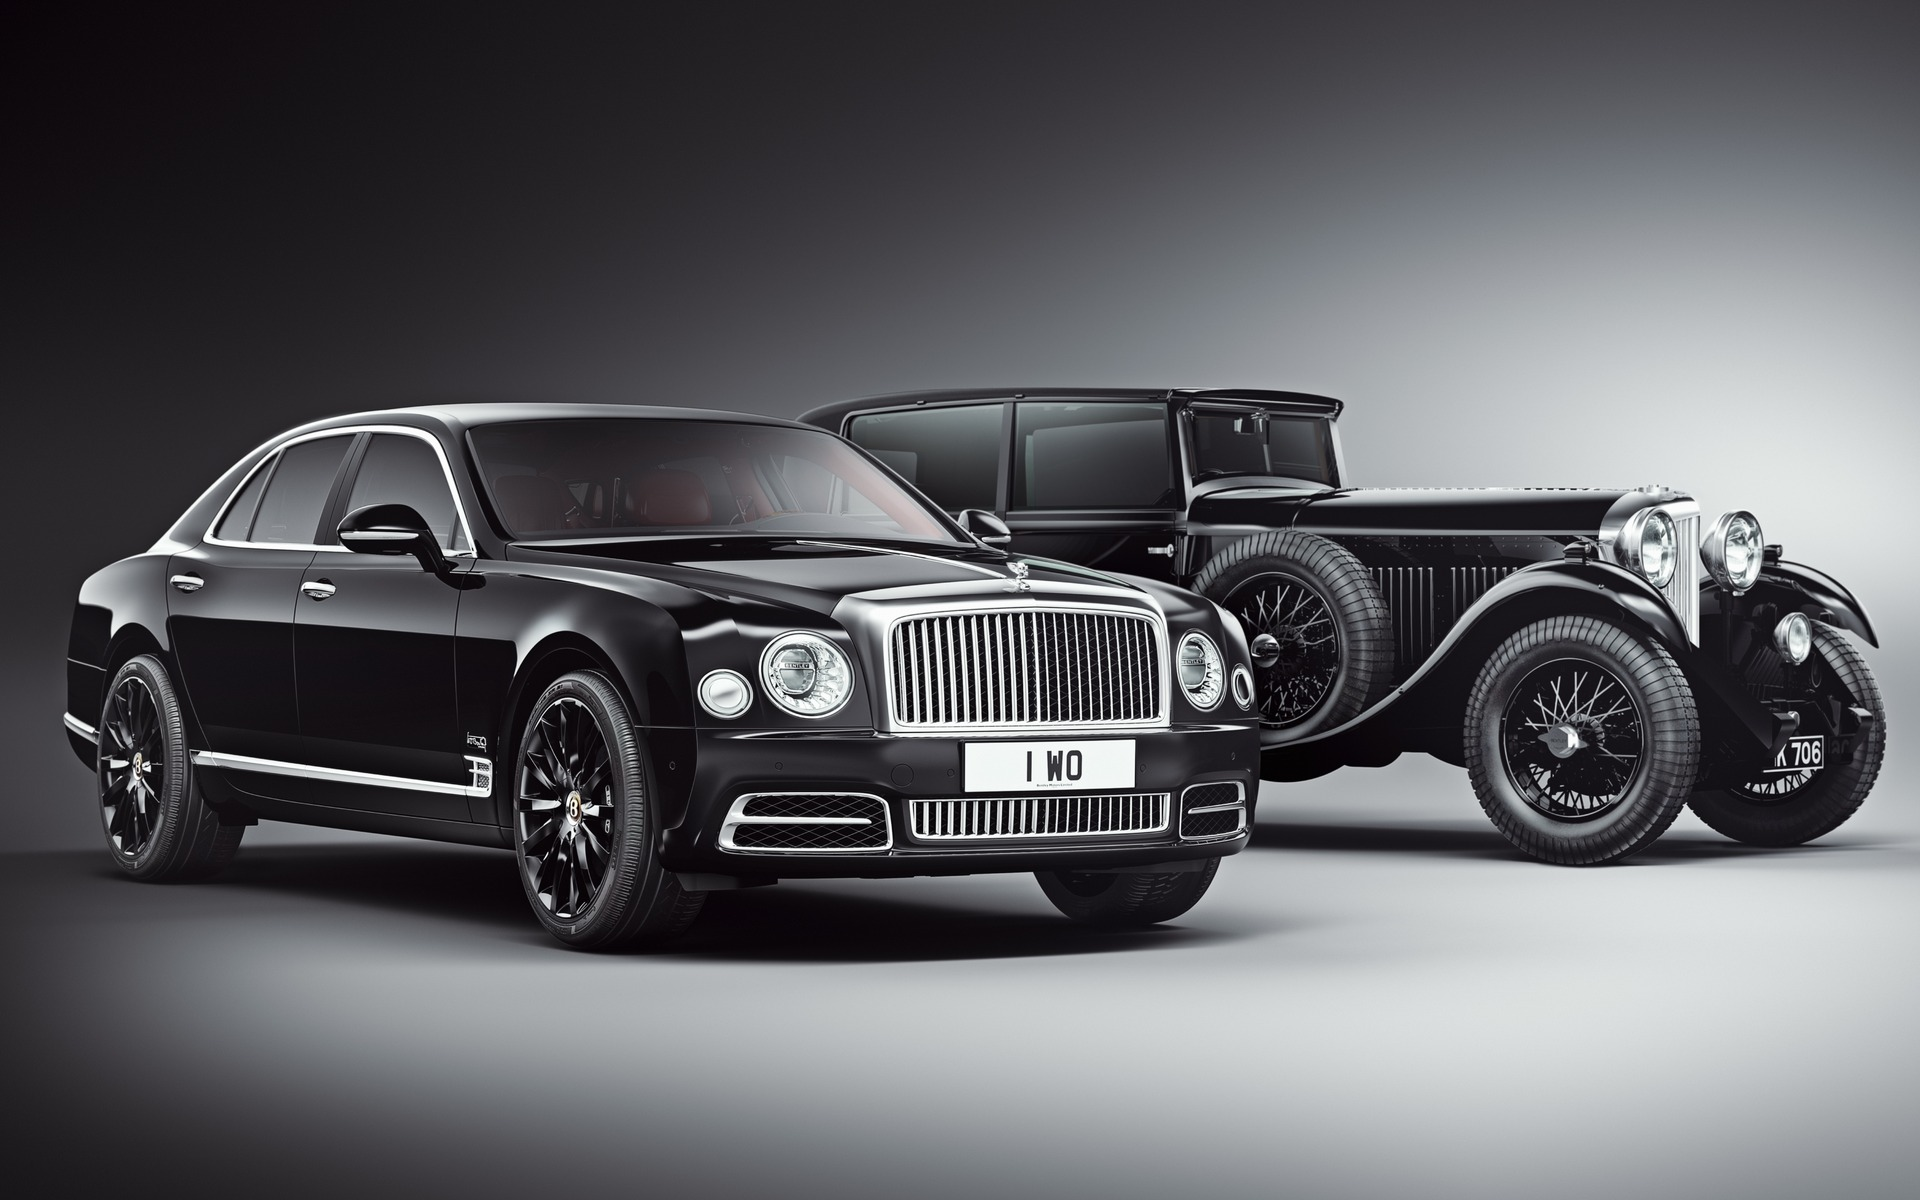 Bentley, celebrates, 100-years, Mulsanne Walter Owen, Edition, NewsMobile, Mobile News, India, Auto, Car